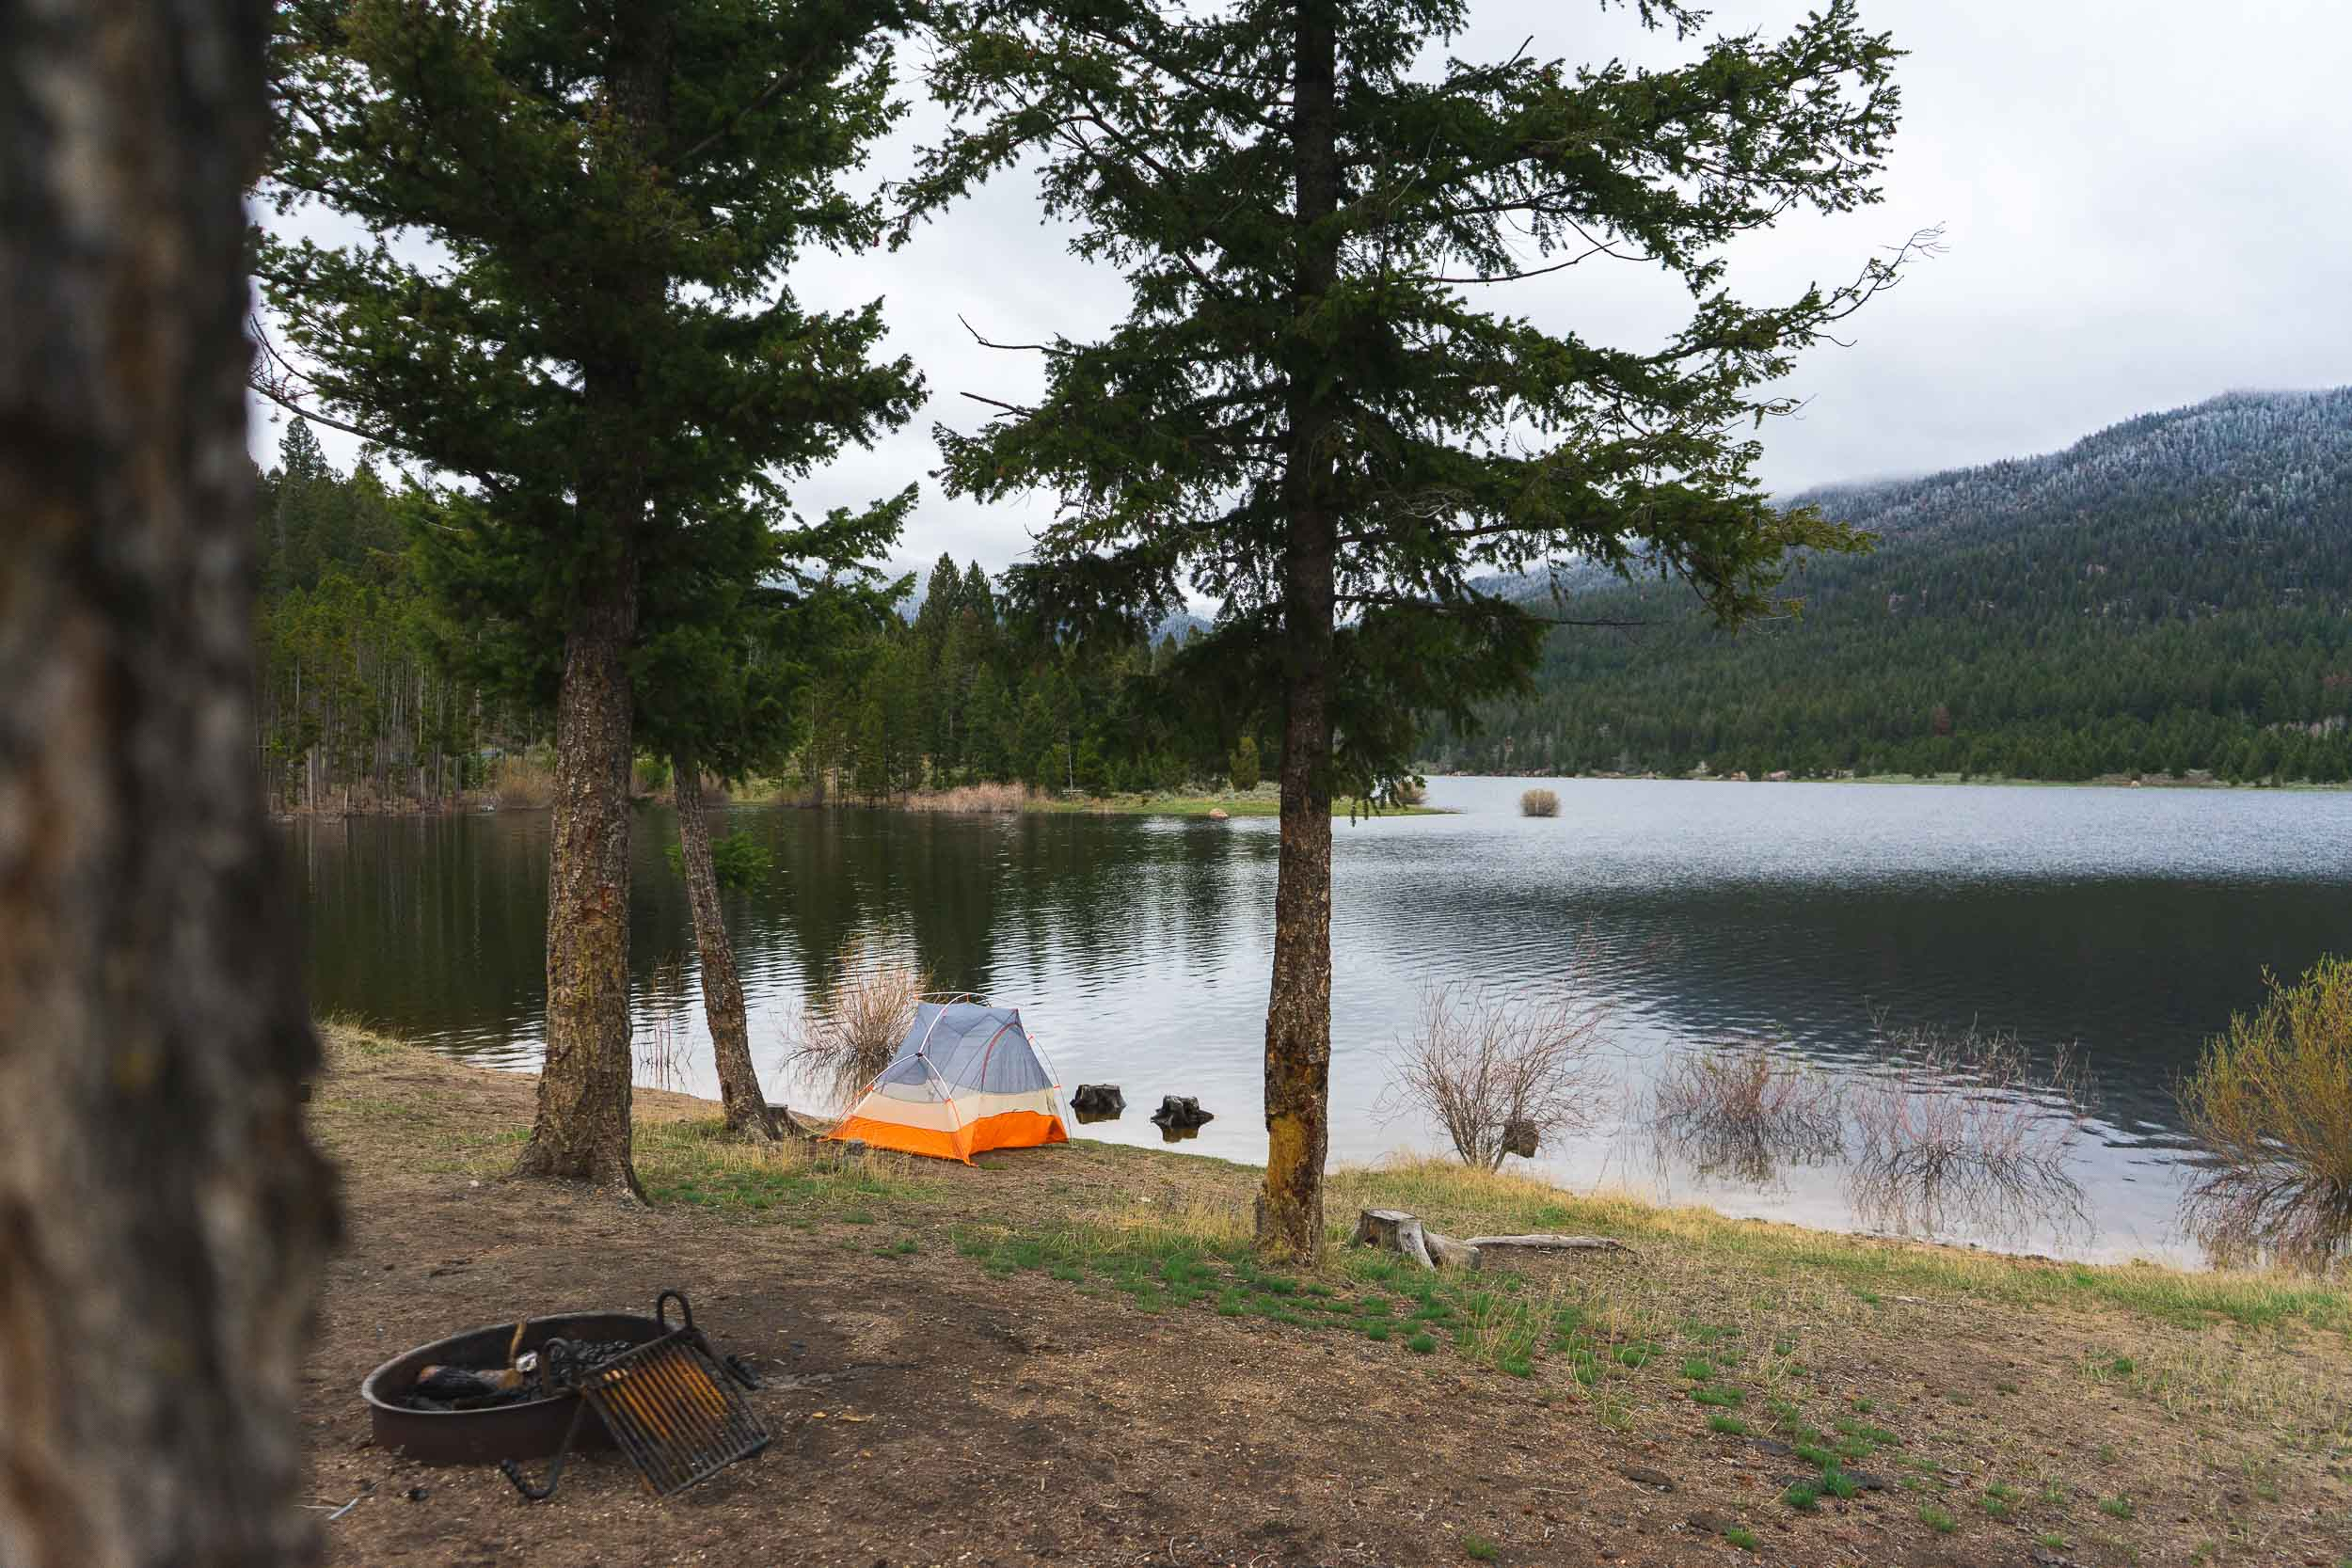 Delmoe Lake Campground is located in Beaverhead-Deerlodge National Forest in southwest Montana about 30 minutes outside of Butte.